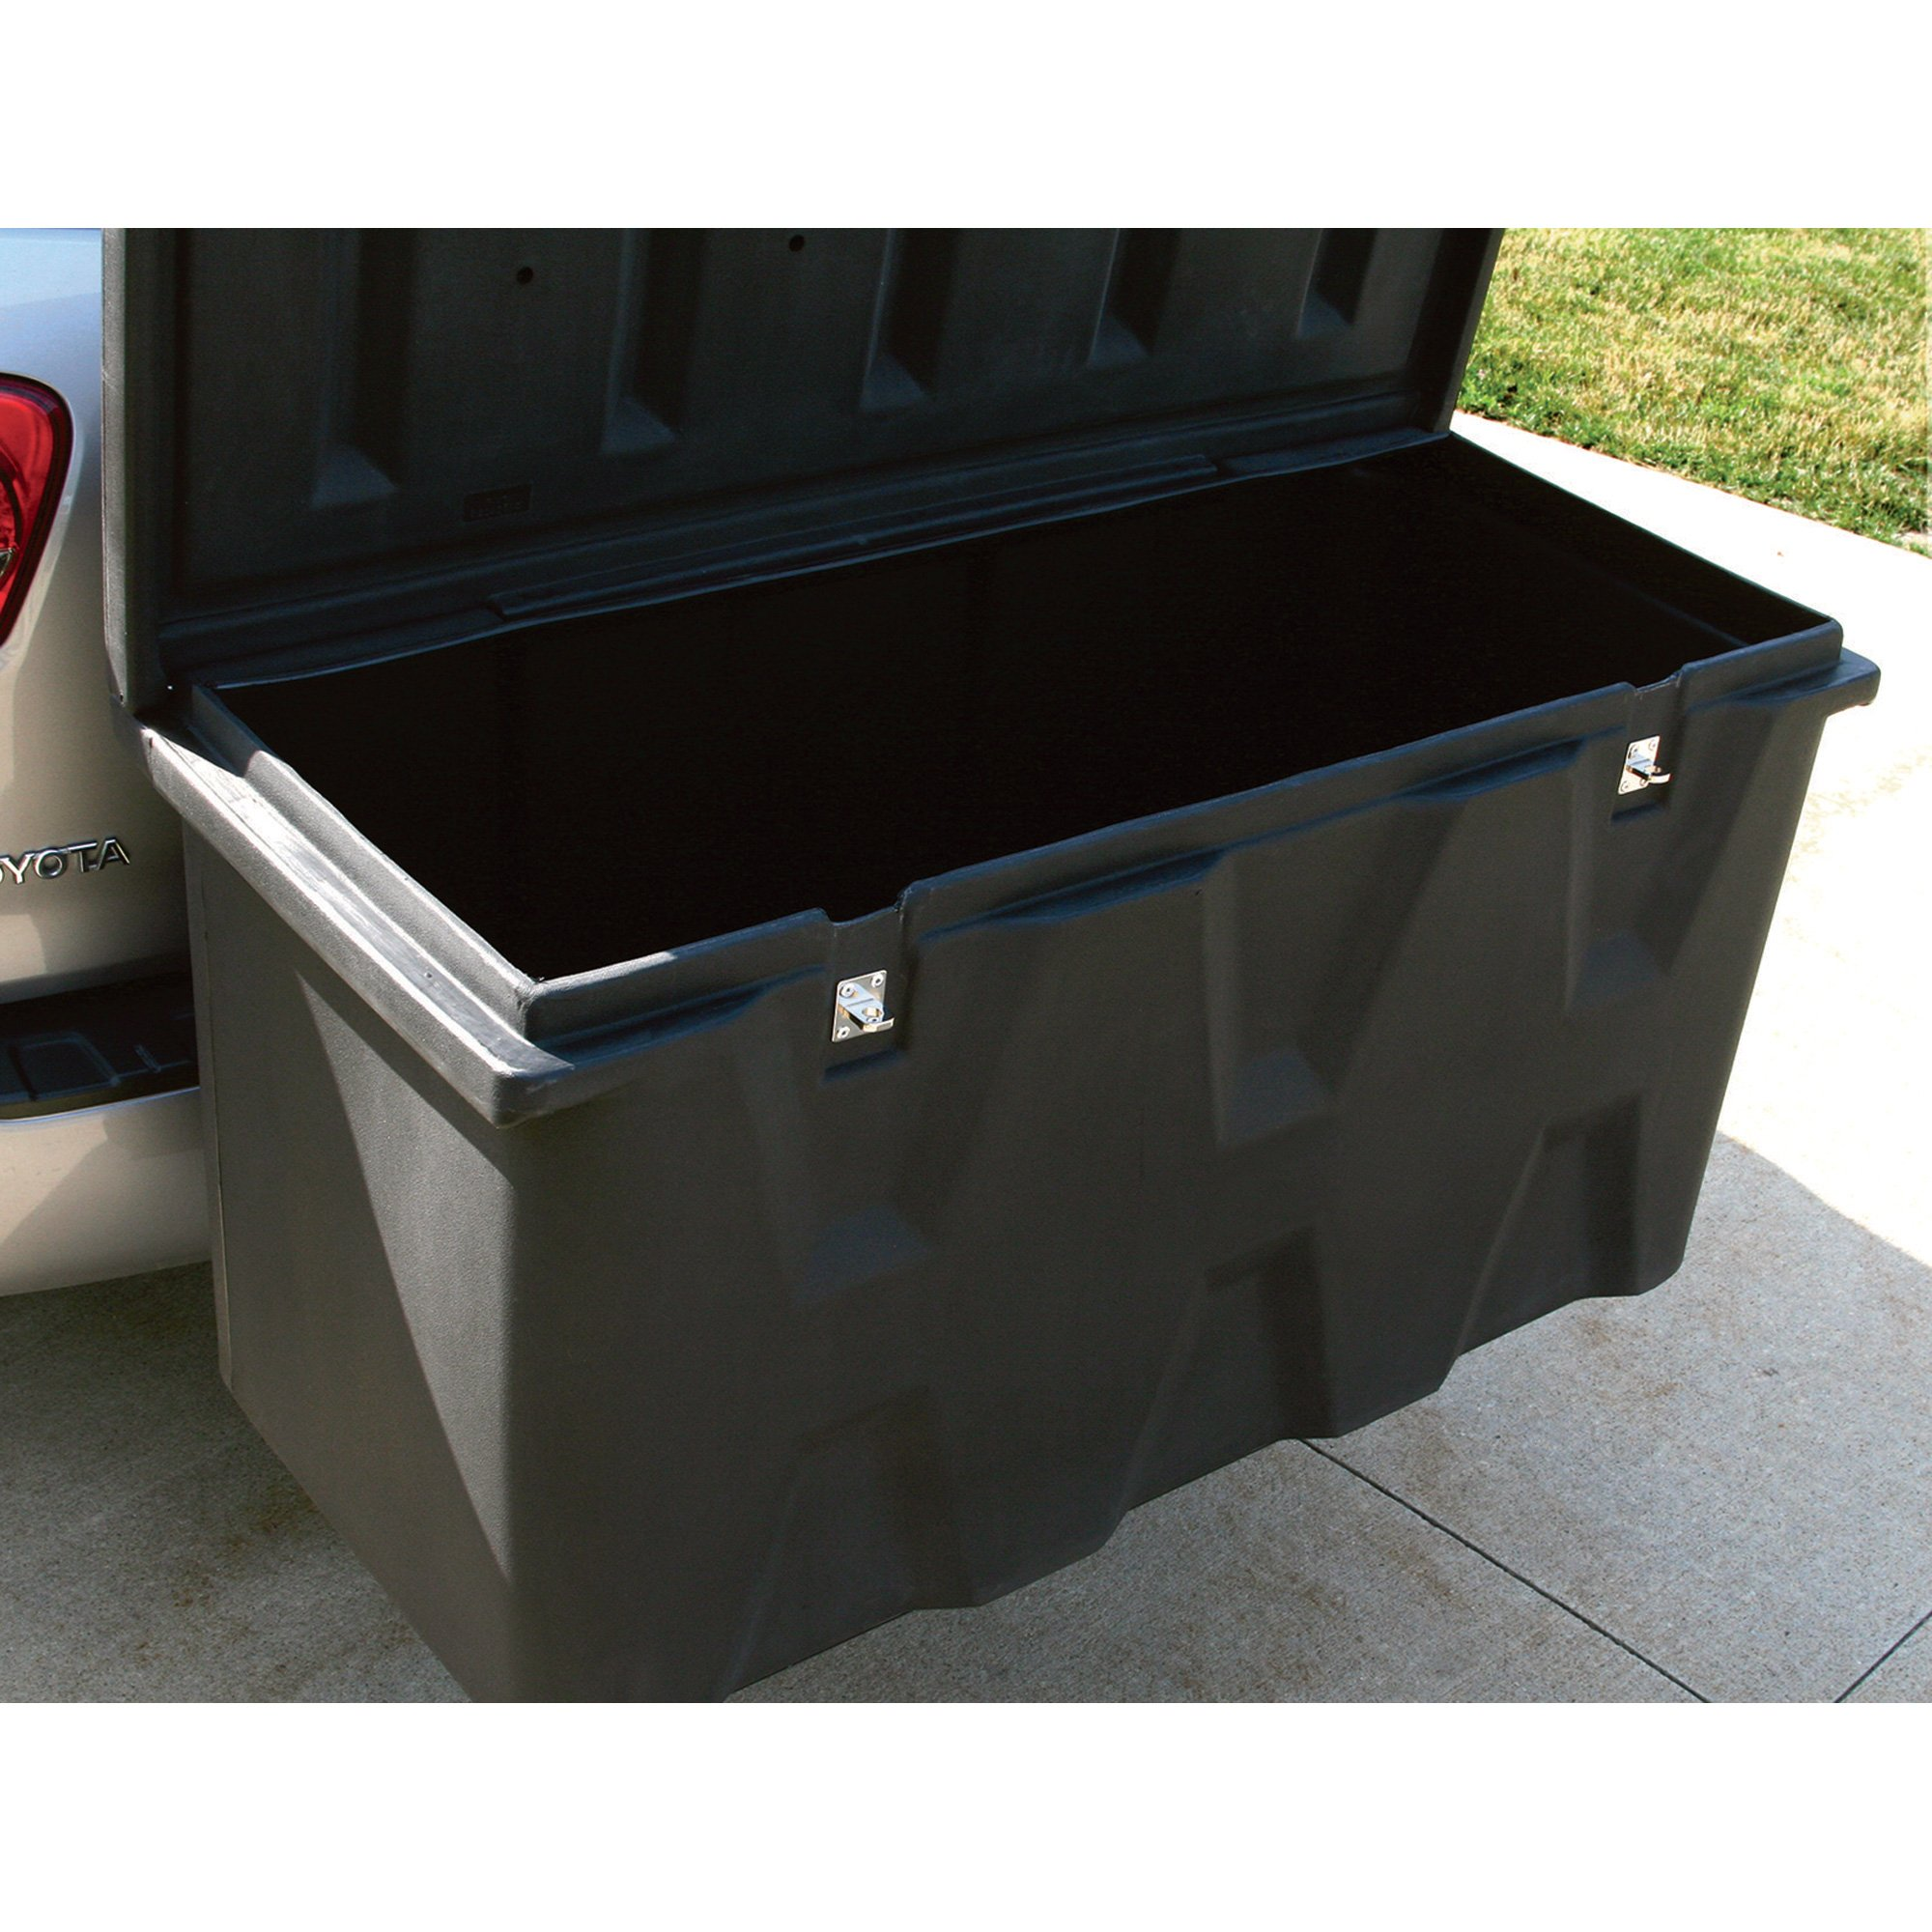 RomoTech All-Purpose Poly Tailgate Cargo Chest - 17 Cu. Ft., 300-Lb. Capacity, Model# 82123385F by RomoTech